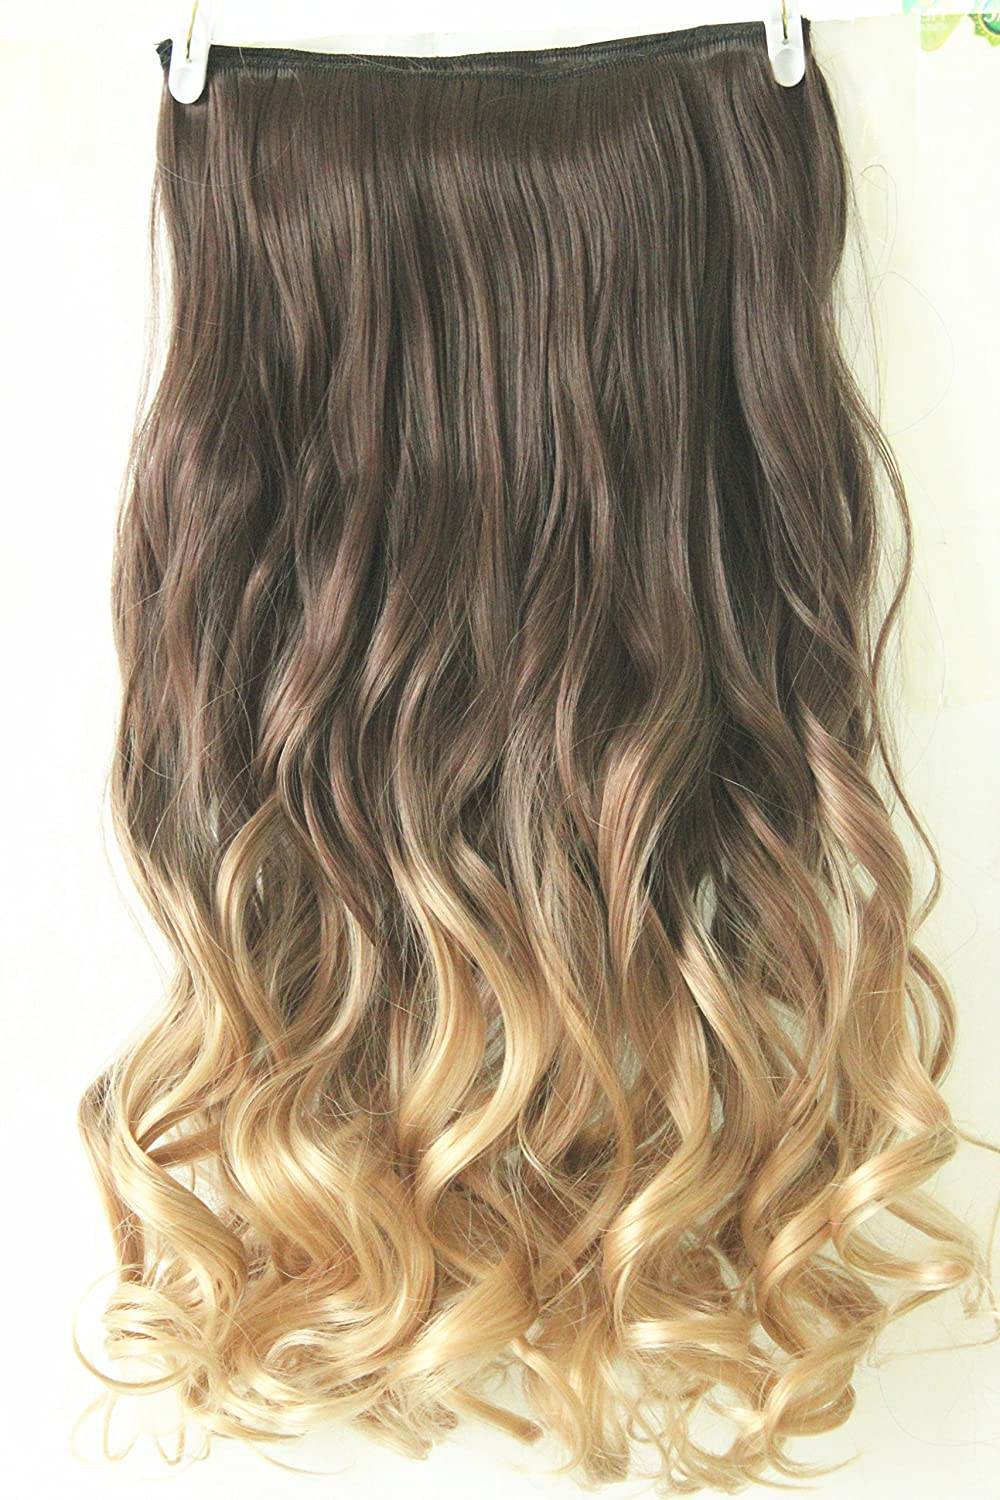 22 full head clip in hair extensions ombre wavy curly dip dye 6 22 full head clip in hair extensions ombre wavy curly dip dye 6 pcs dark brown to sandy blonde amazon beauty urmus Image collections